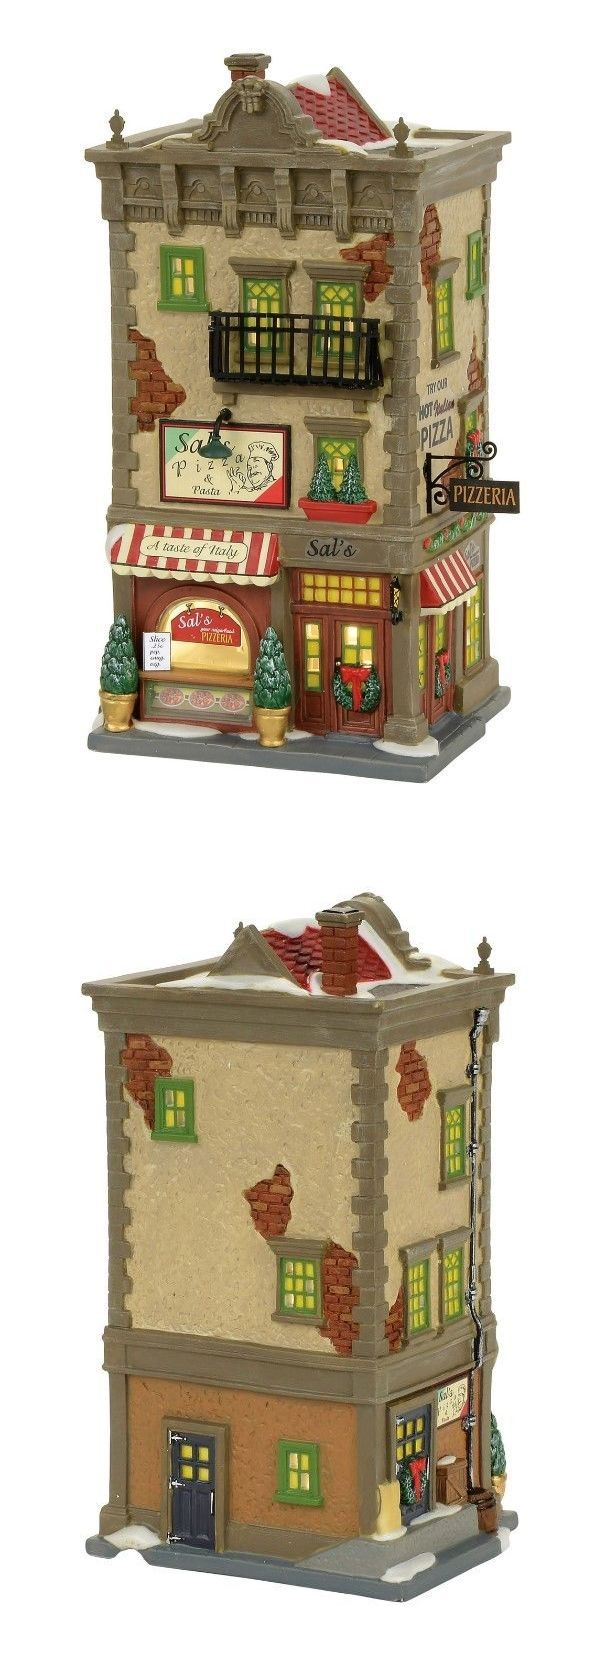 Christmas Collectible Department 56: Dept 56 Christmas In The City Sals Pizza And Pasta Brand New 2017 Free Shipping -> BUY IT NOW ONLY: $114.75 on eBay!